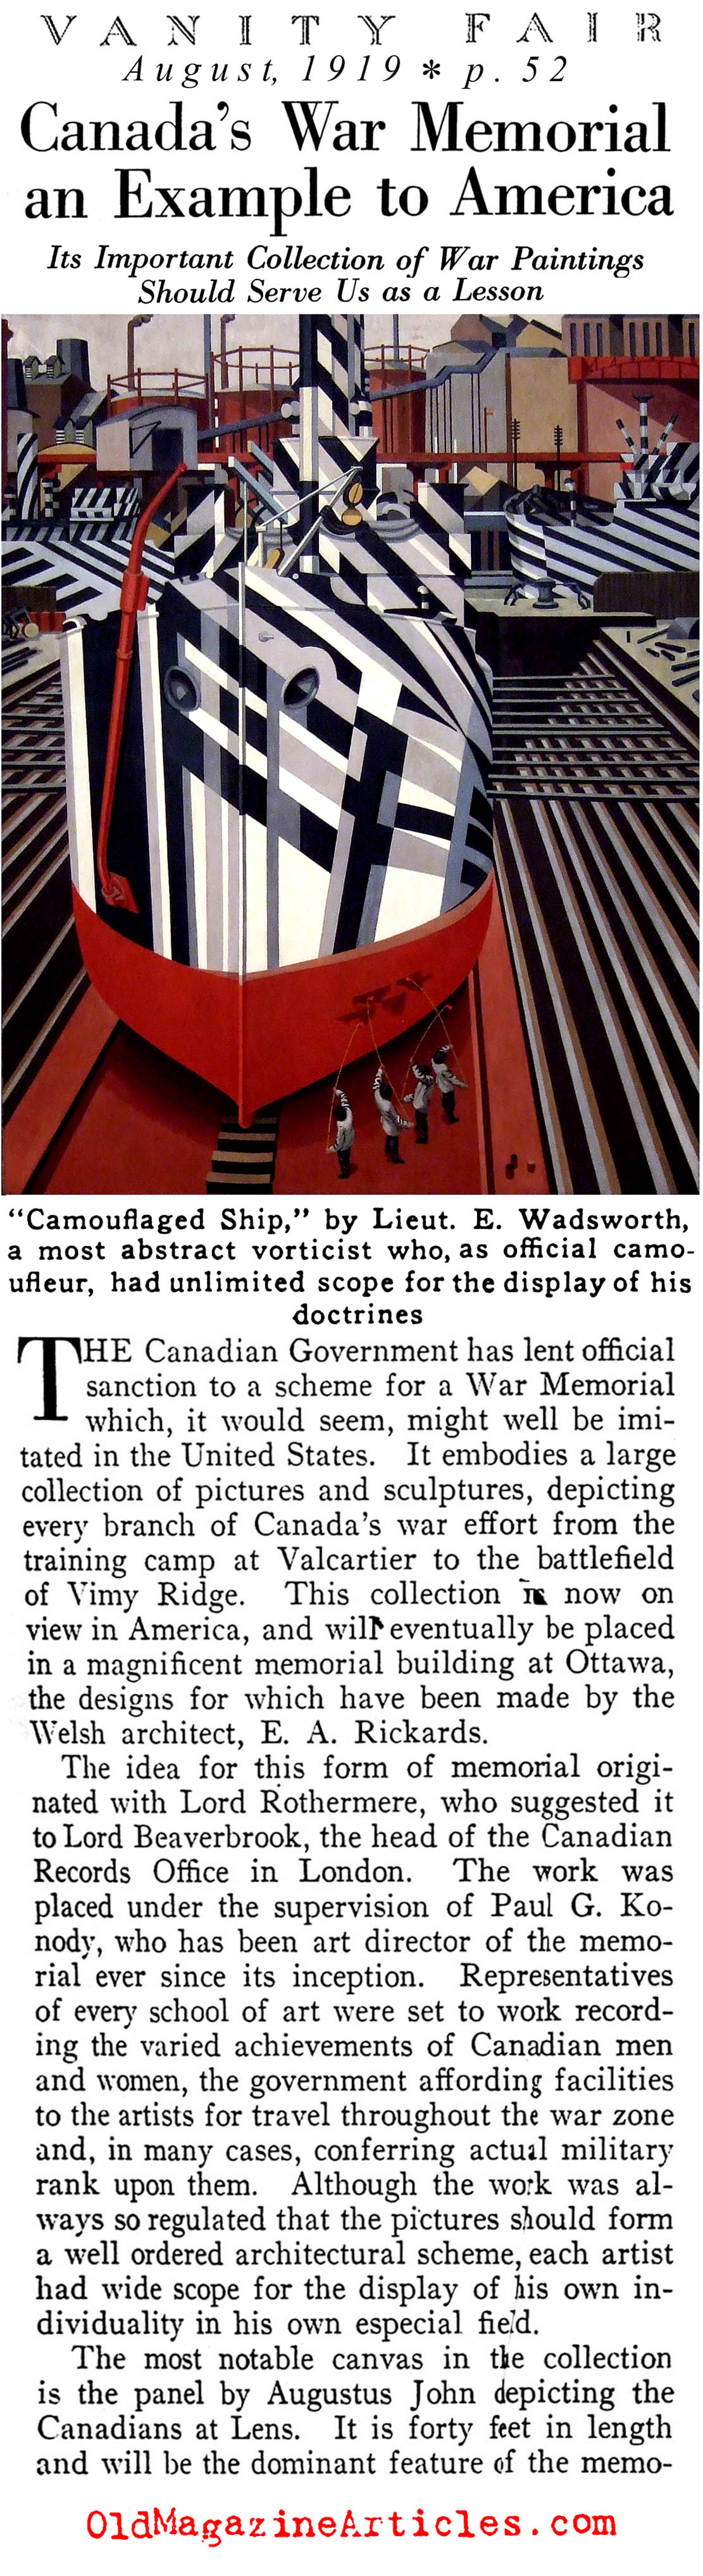 W.W. I Art and the Canadian War Memorial (Vanity Fair Magazine, 1919)